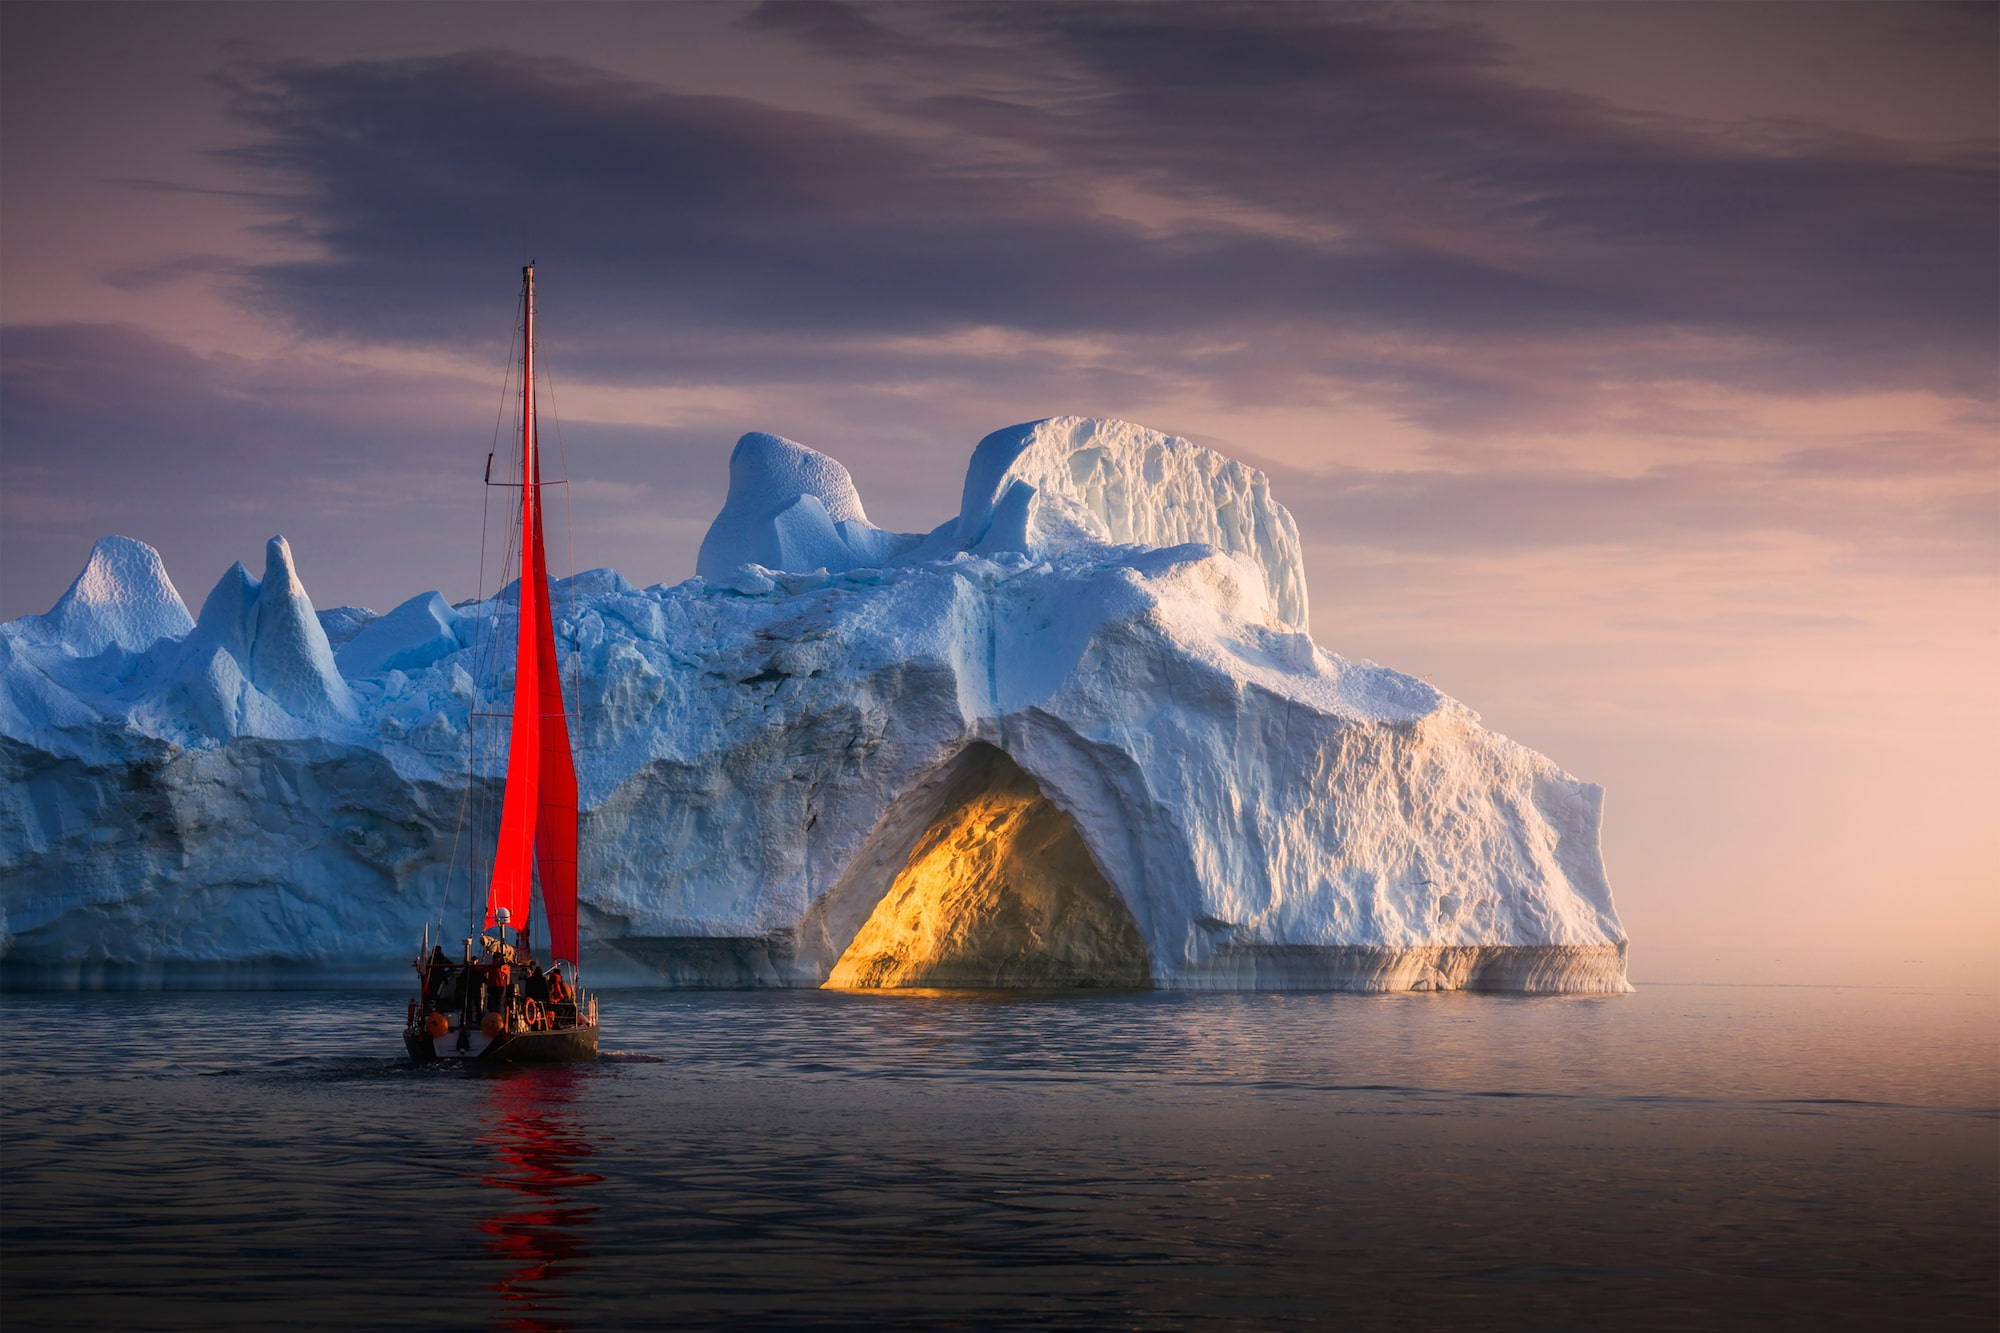 albert dros sony alpha A7RM4 a sailing ship sits in front of an iceberg with the late evening sun casting a warm glow through a natural cave